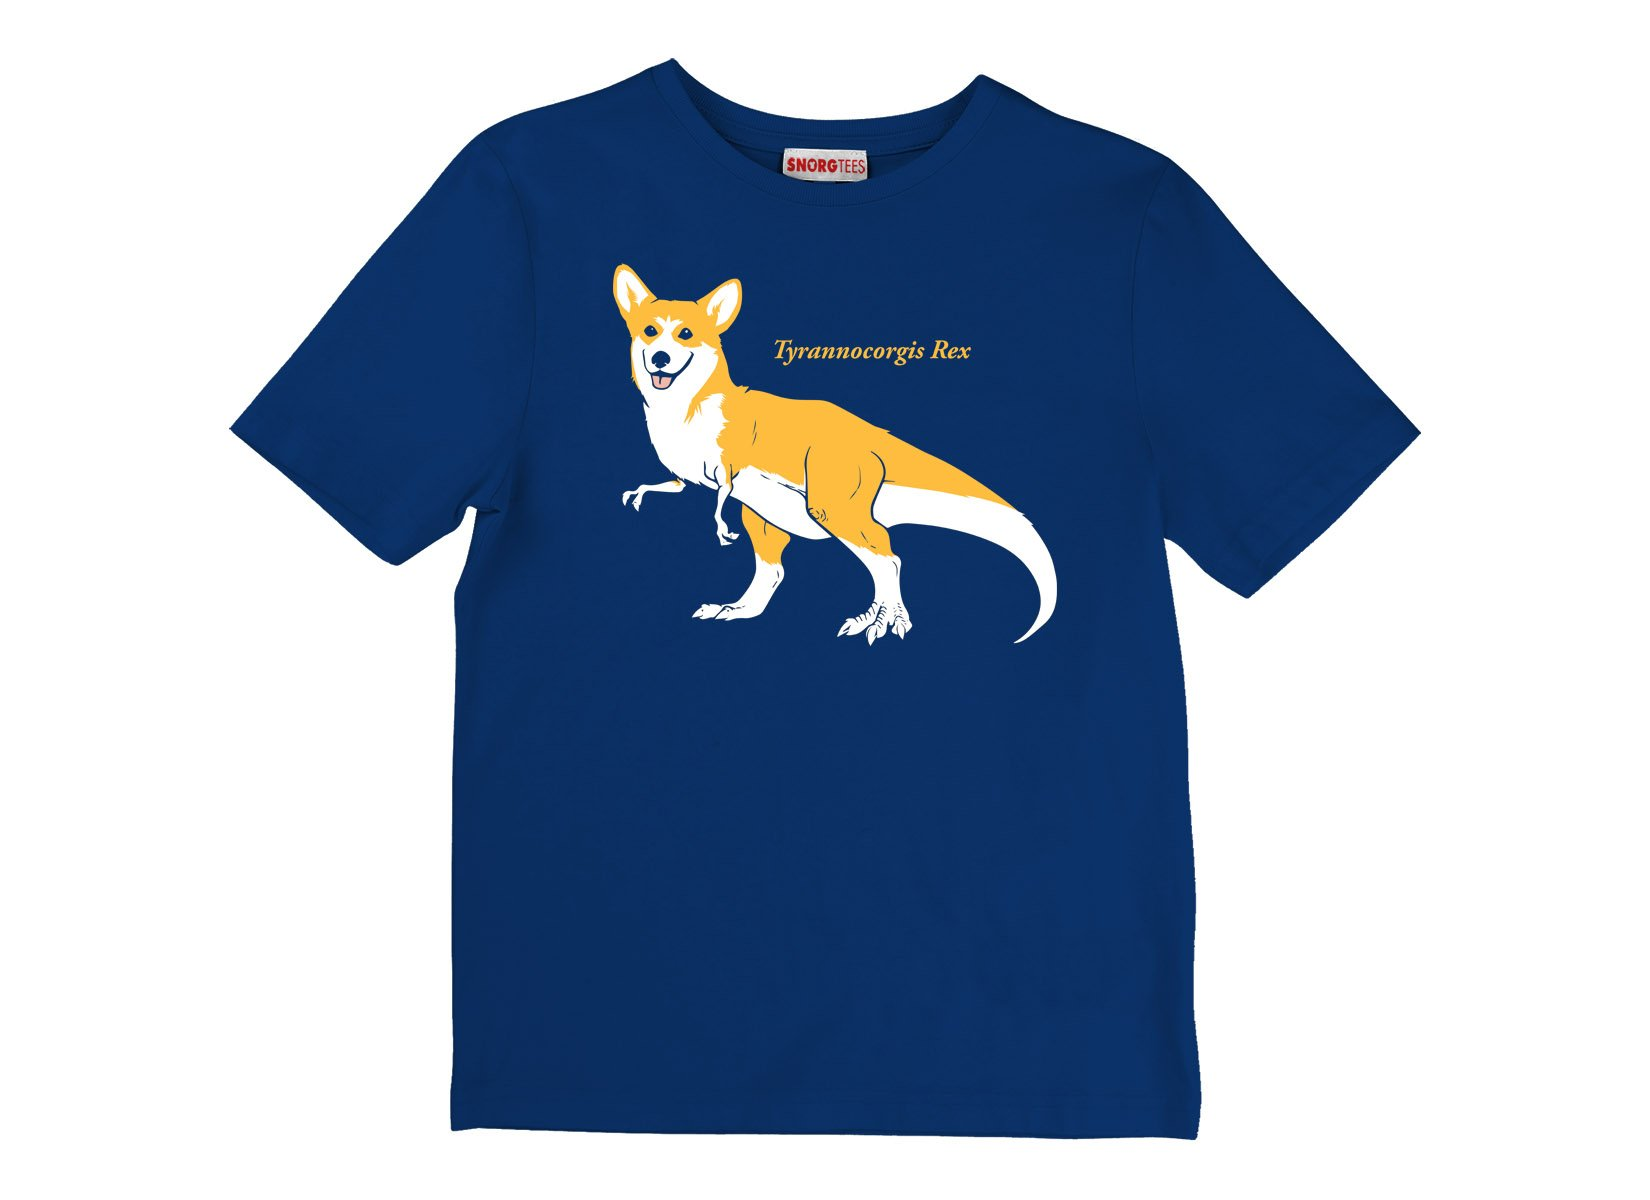 Tyrannocorgis Rex on Kids T-Shirt